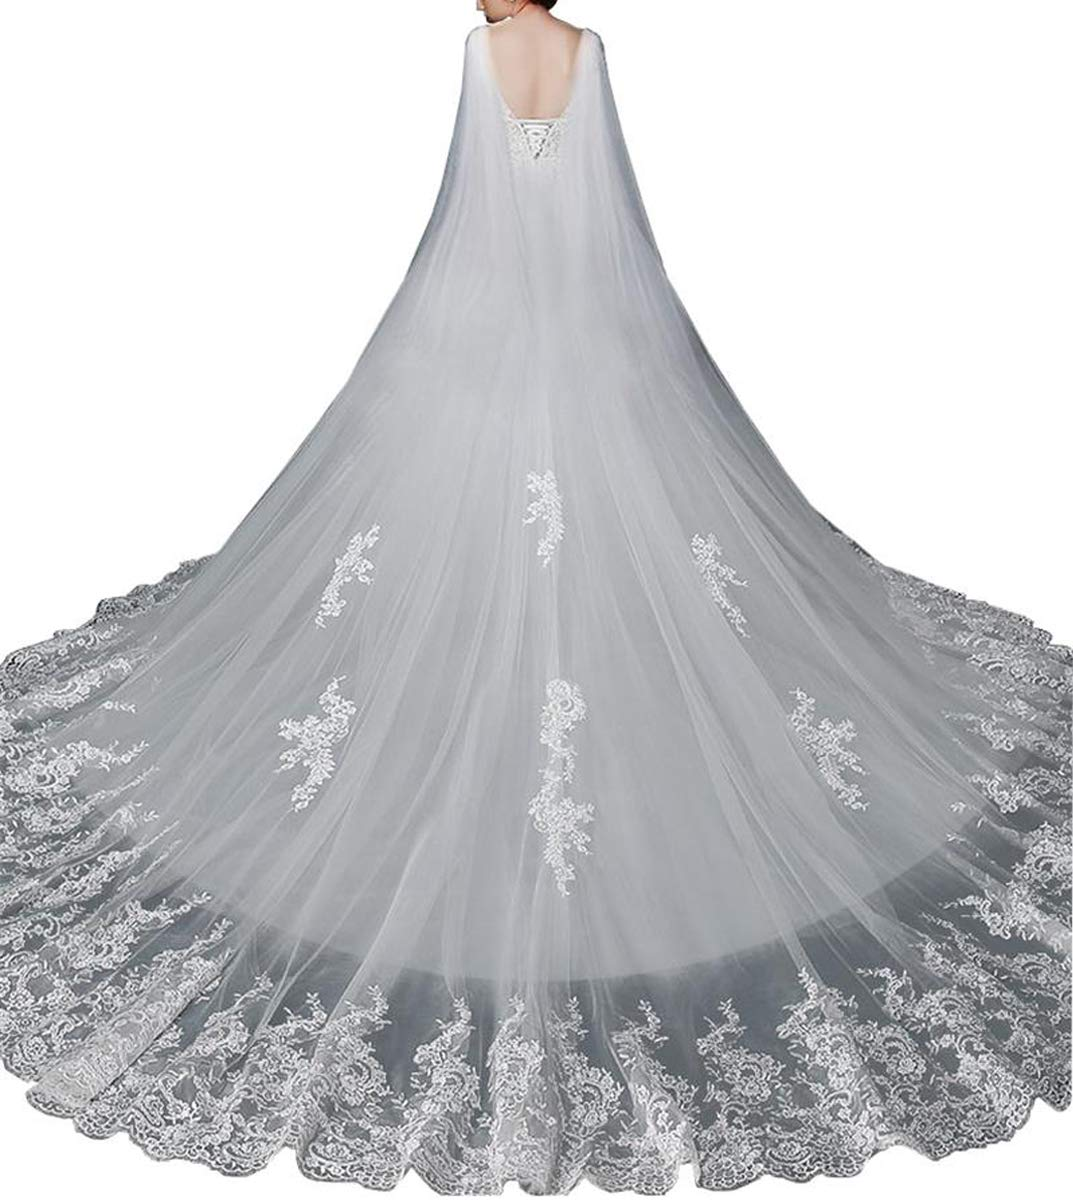 Stylish Tulle Cape Veil Cathedral Length Lace From Shoulder to Floor For Bridal 2018 (Ivory, 4Meter)